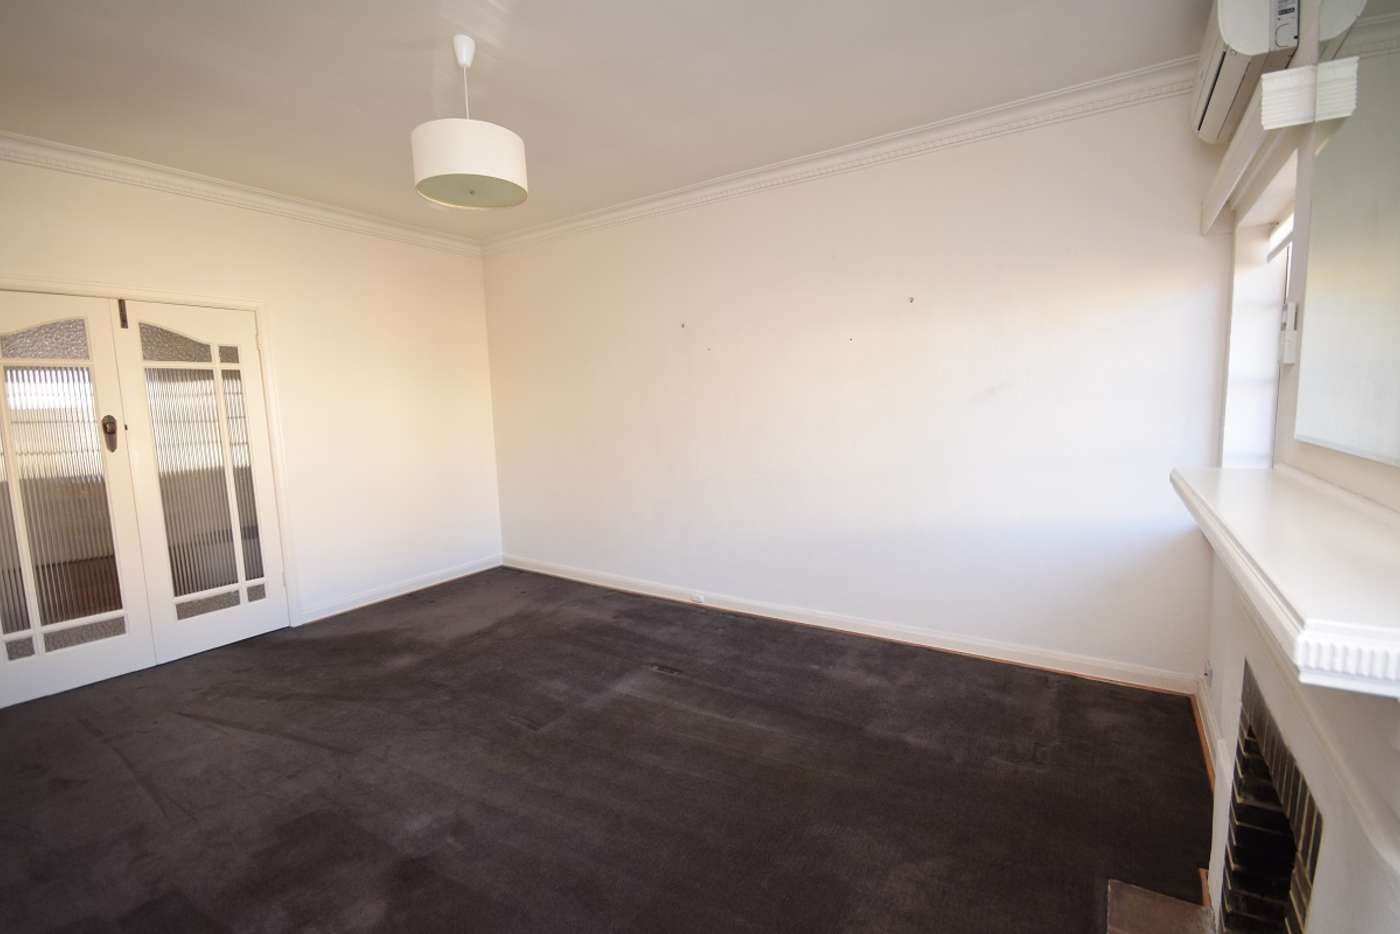 Sixth view of Homely apartment listing, 4/539 Orrong Road, Armadale VIC 3143